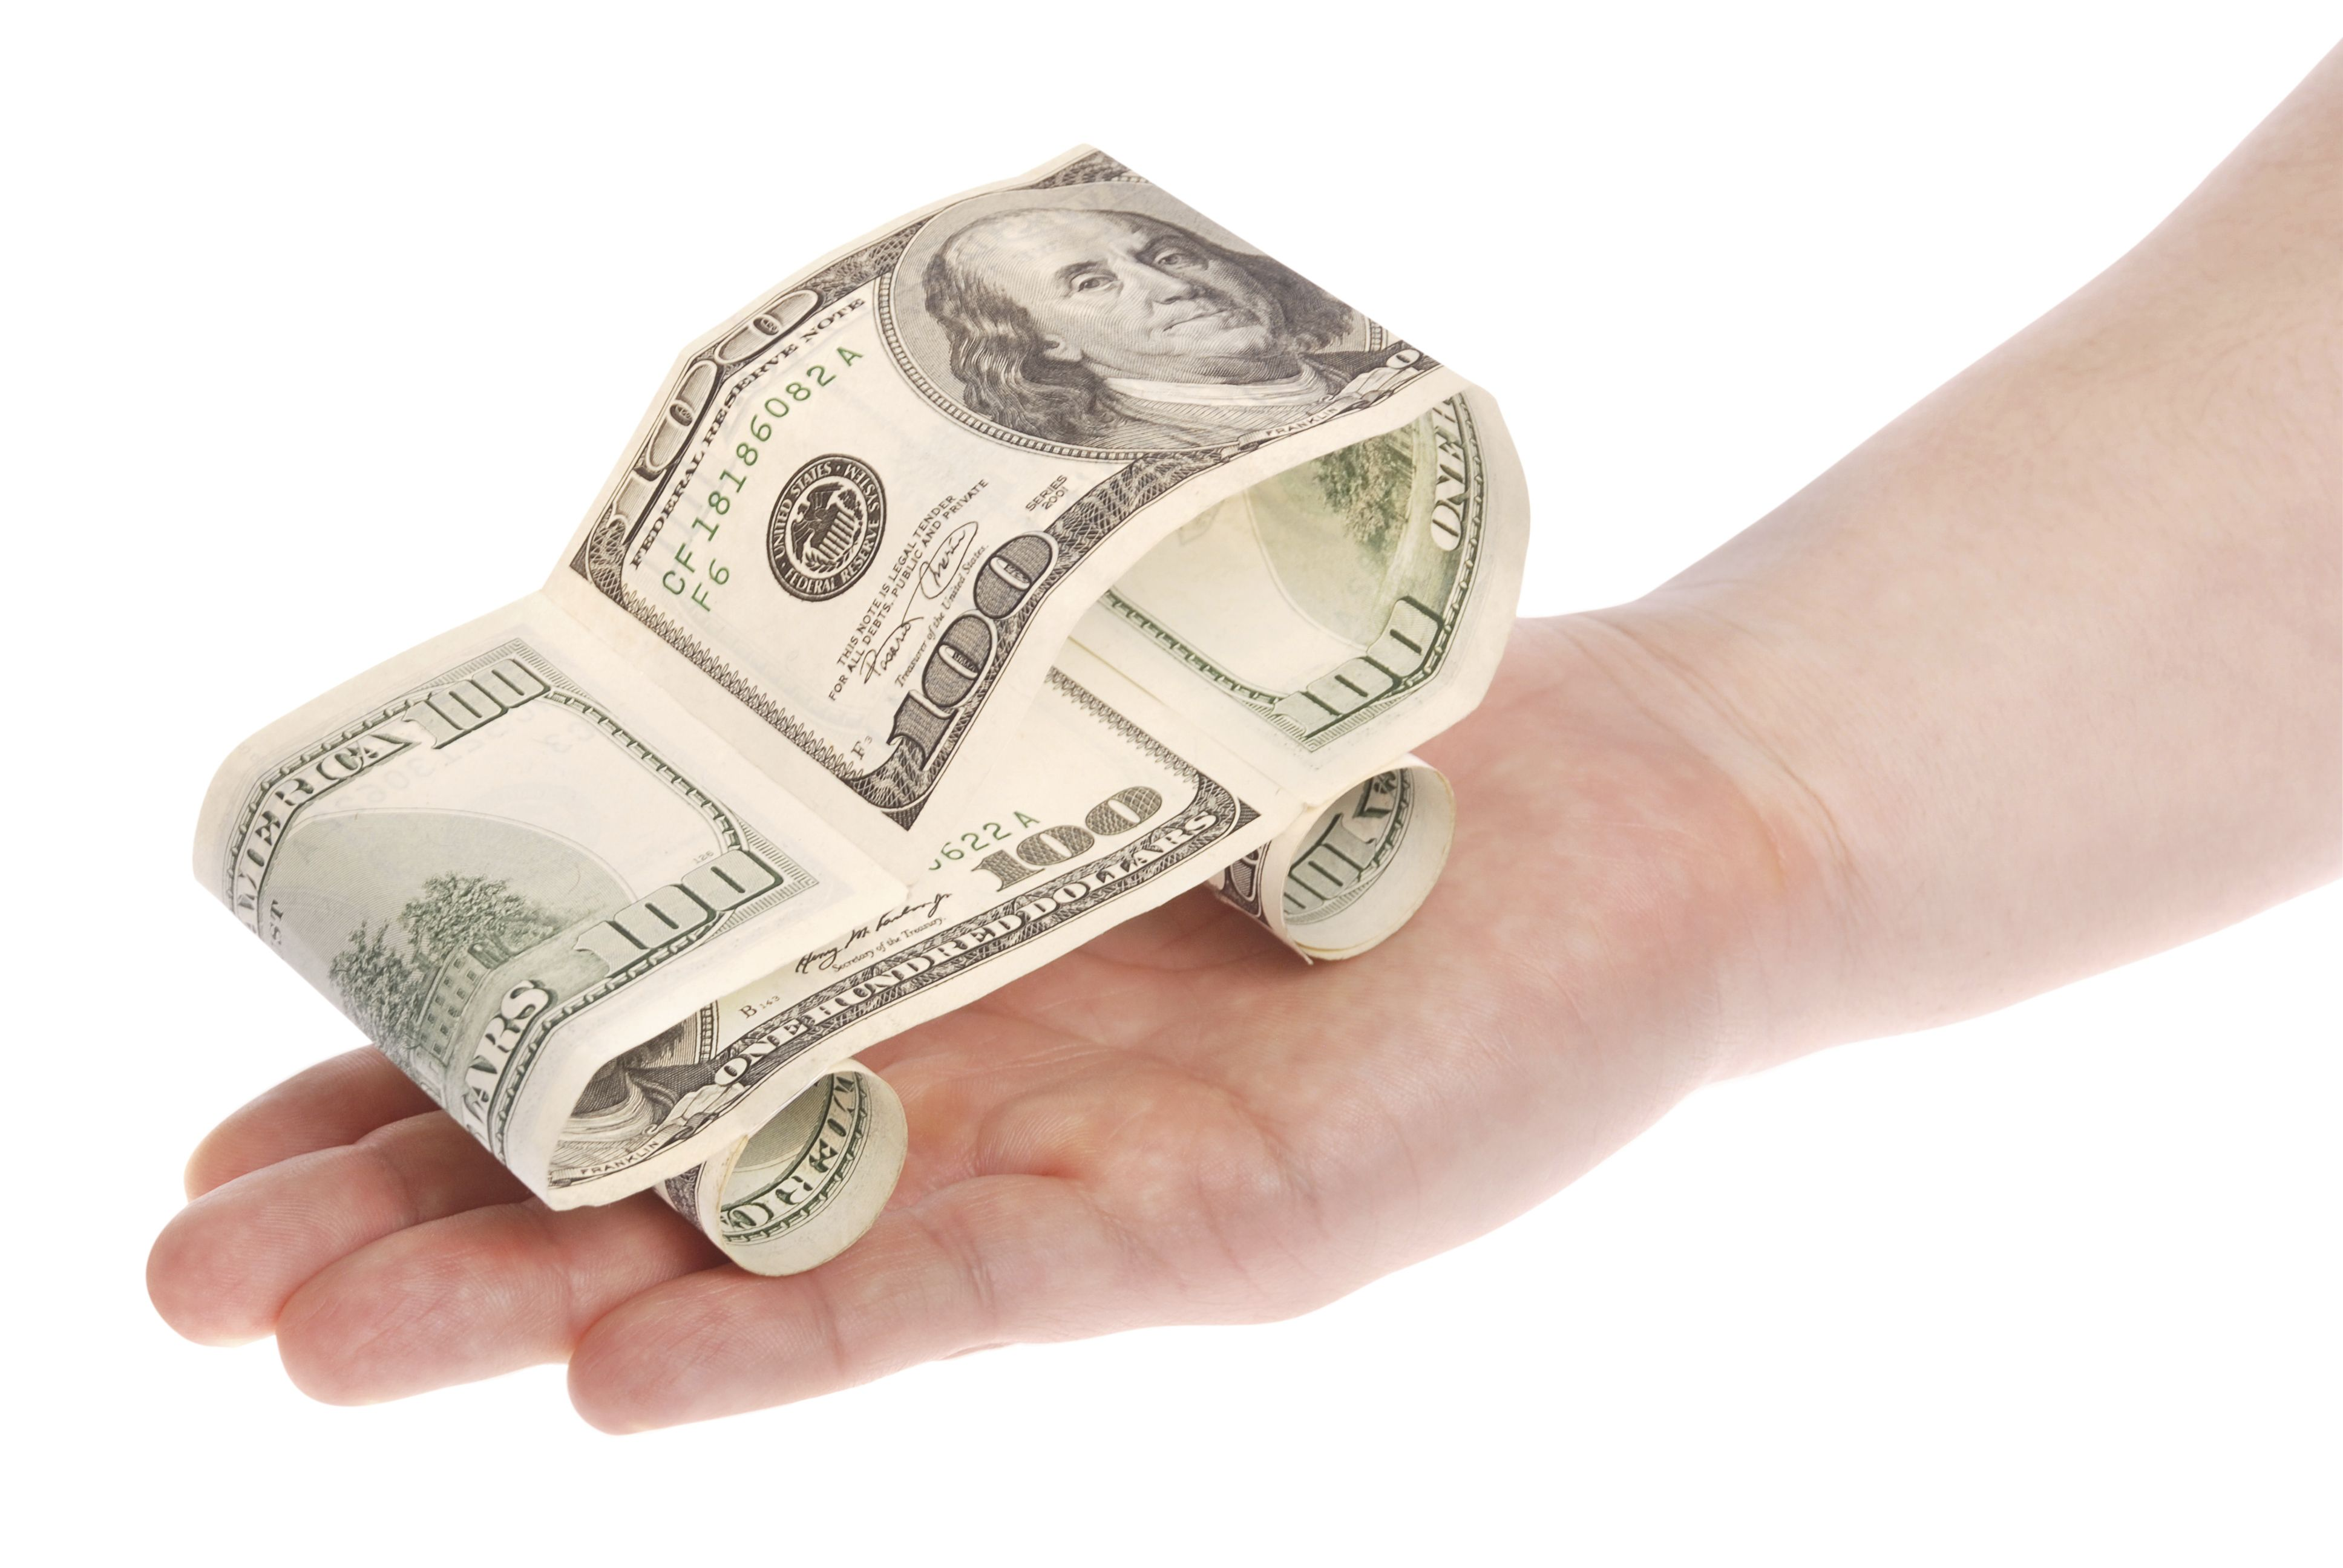 Sell a used car for cash. Get money in your hand, today